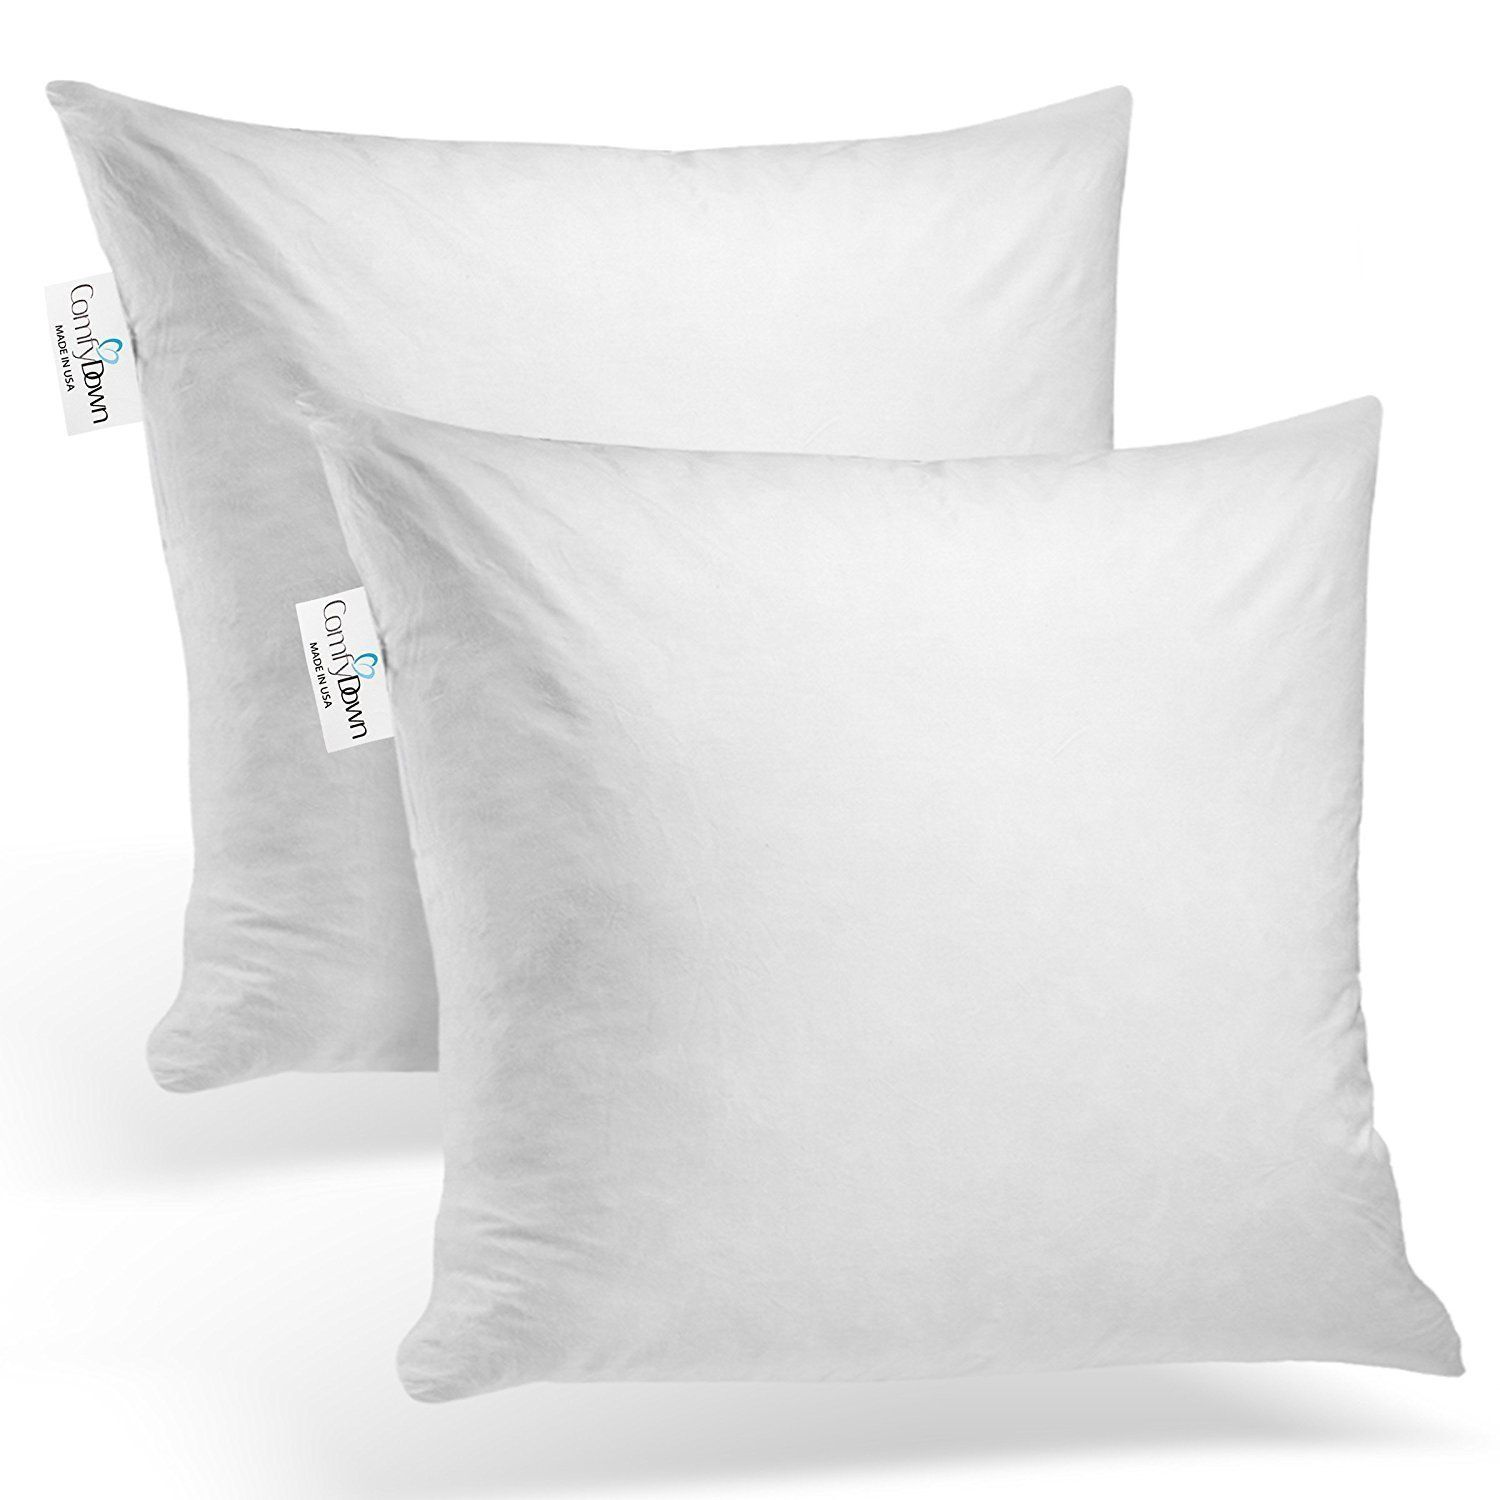 26X26 Pillow Insert Comfydown Set Of Two 95% Feather 5% Down 26 X 26 Square Decorative